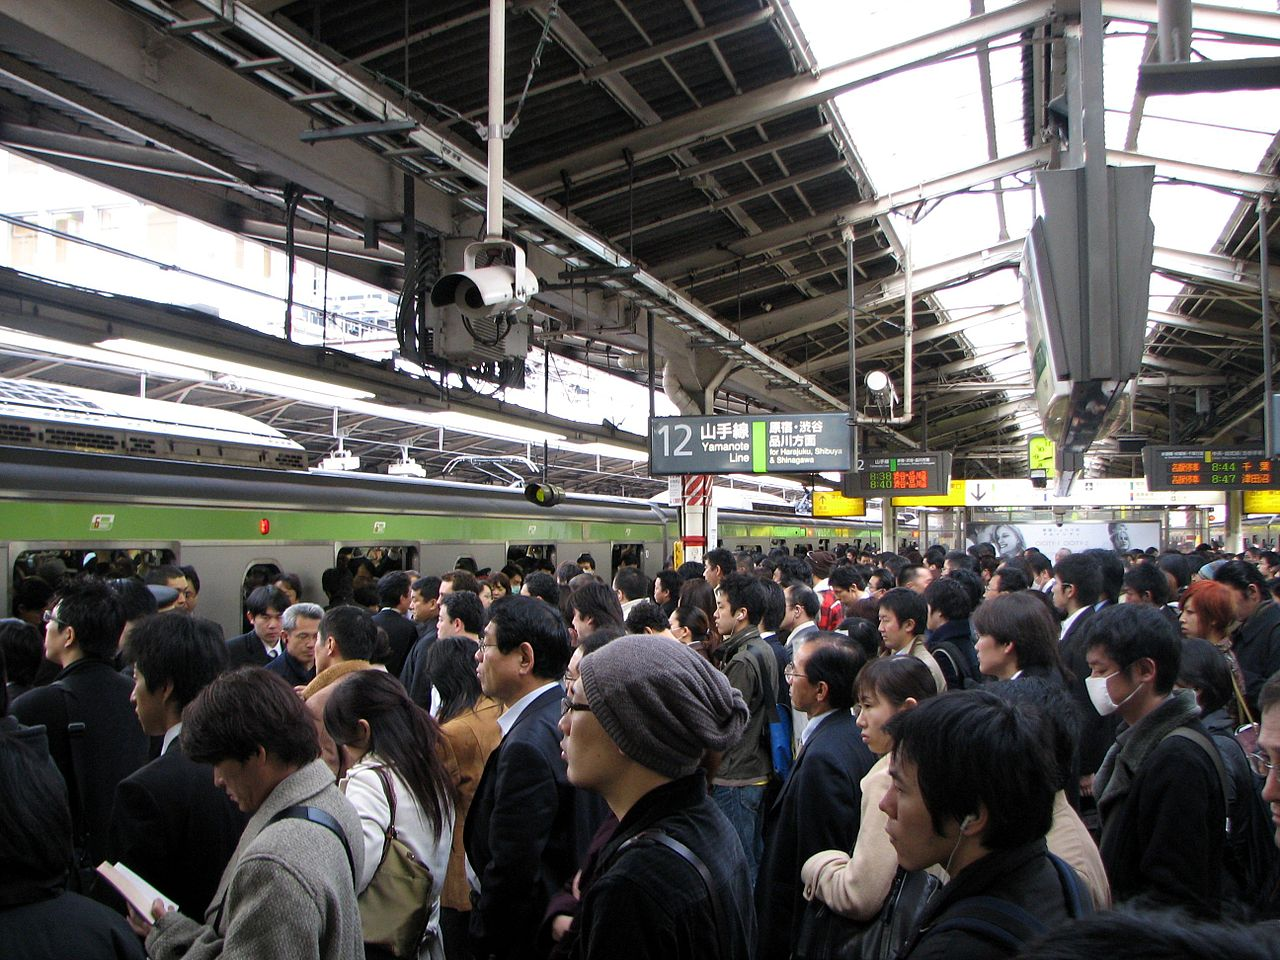 http://upload.wikimedia.org/wikipedia/commons/thumb/6/66/Rush_hour_at_Shinjuku_02.JPG/1280px-Rush_hour_at_Shinjuku_02.JPG